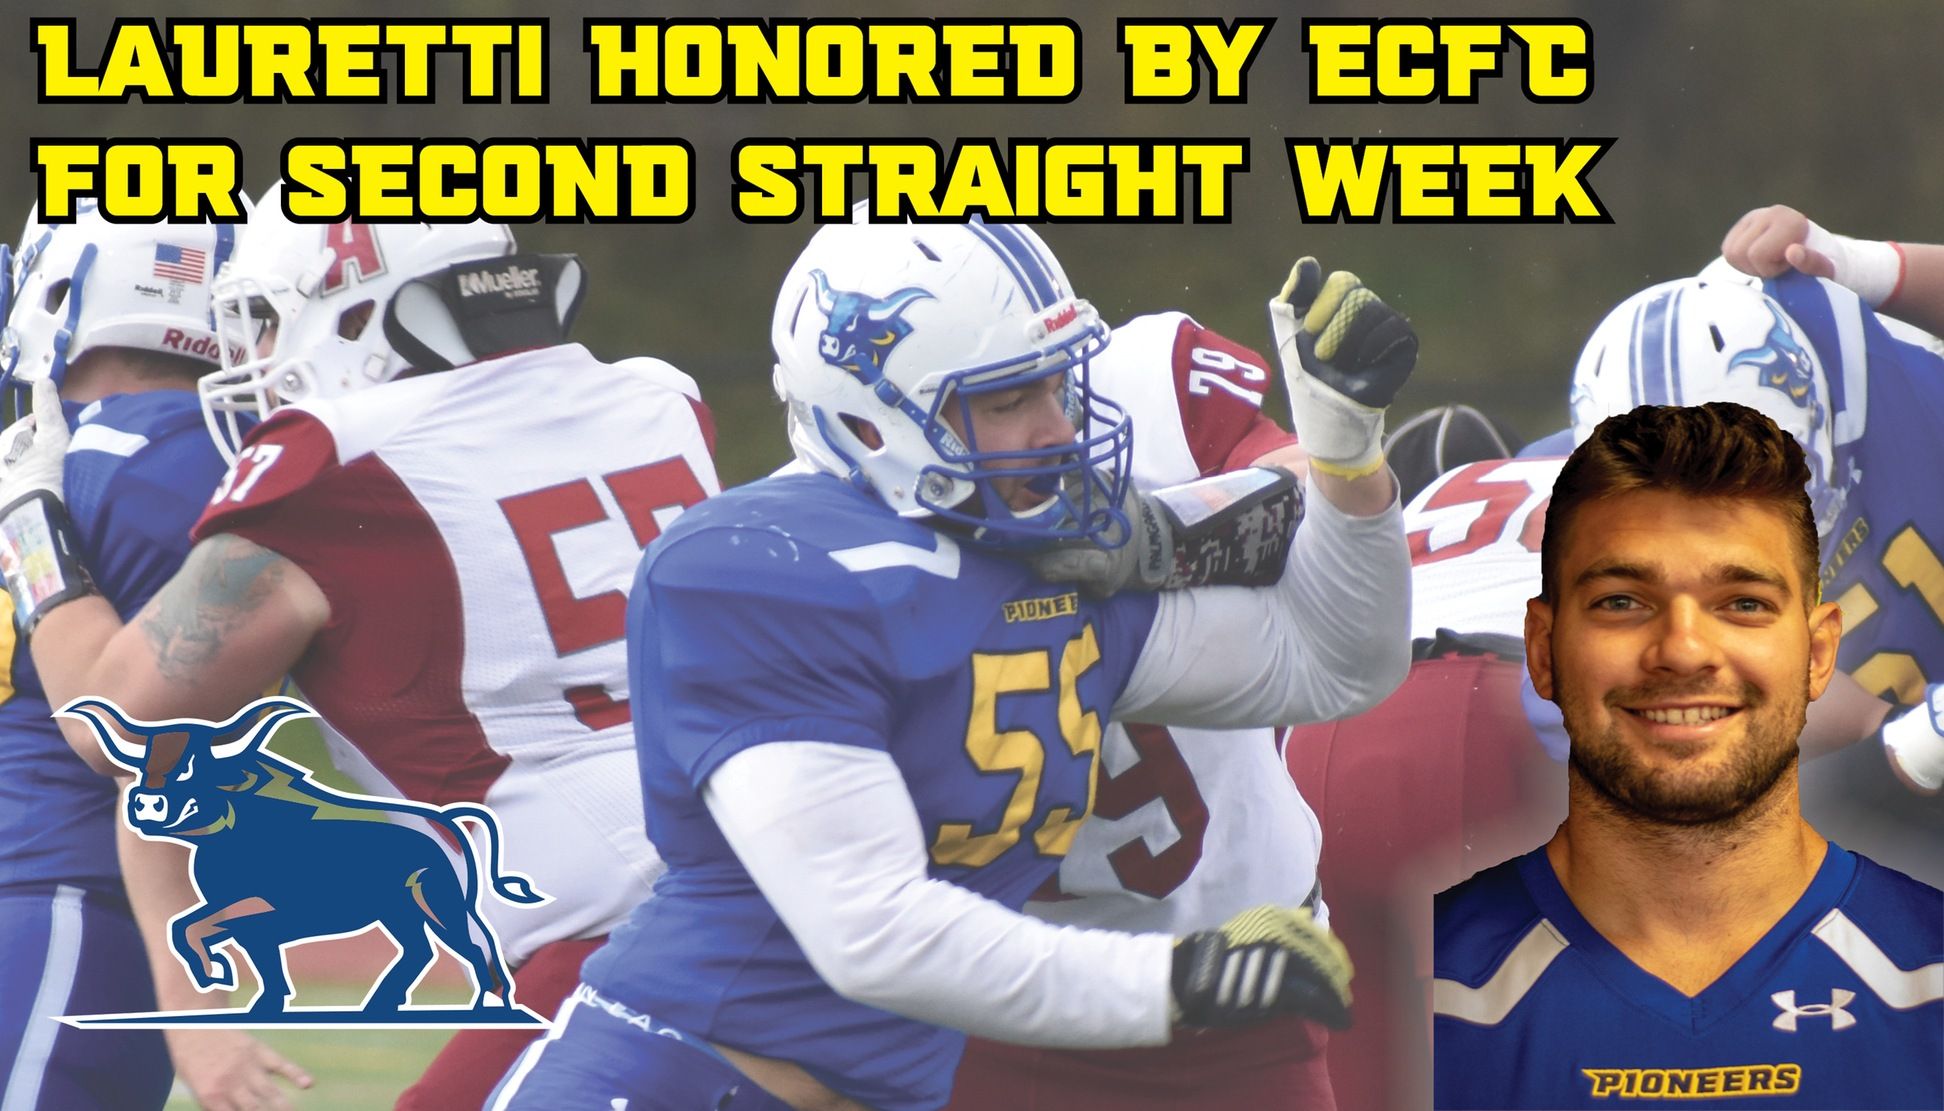 John Lauretti named ECFC Defensive Player of the Week